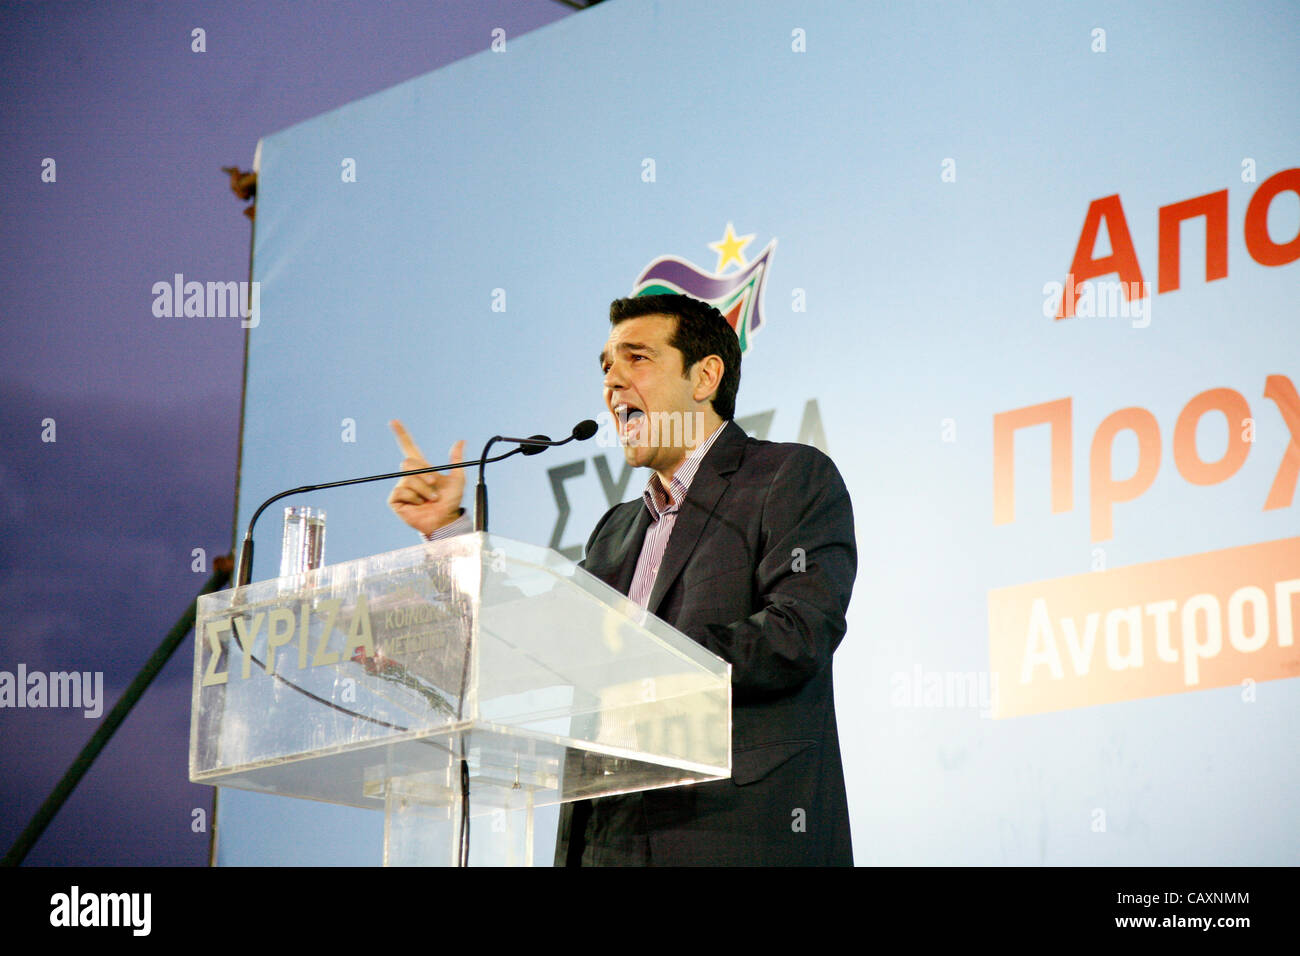 Coalition of the Radical Left (SYRIZA) leader Alexis Tsipras delivers a pre-election speech to supporters at Aristotle's - Stock Image